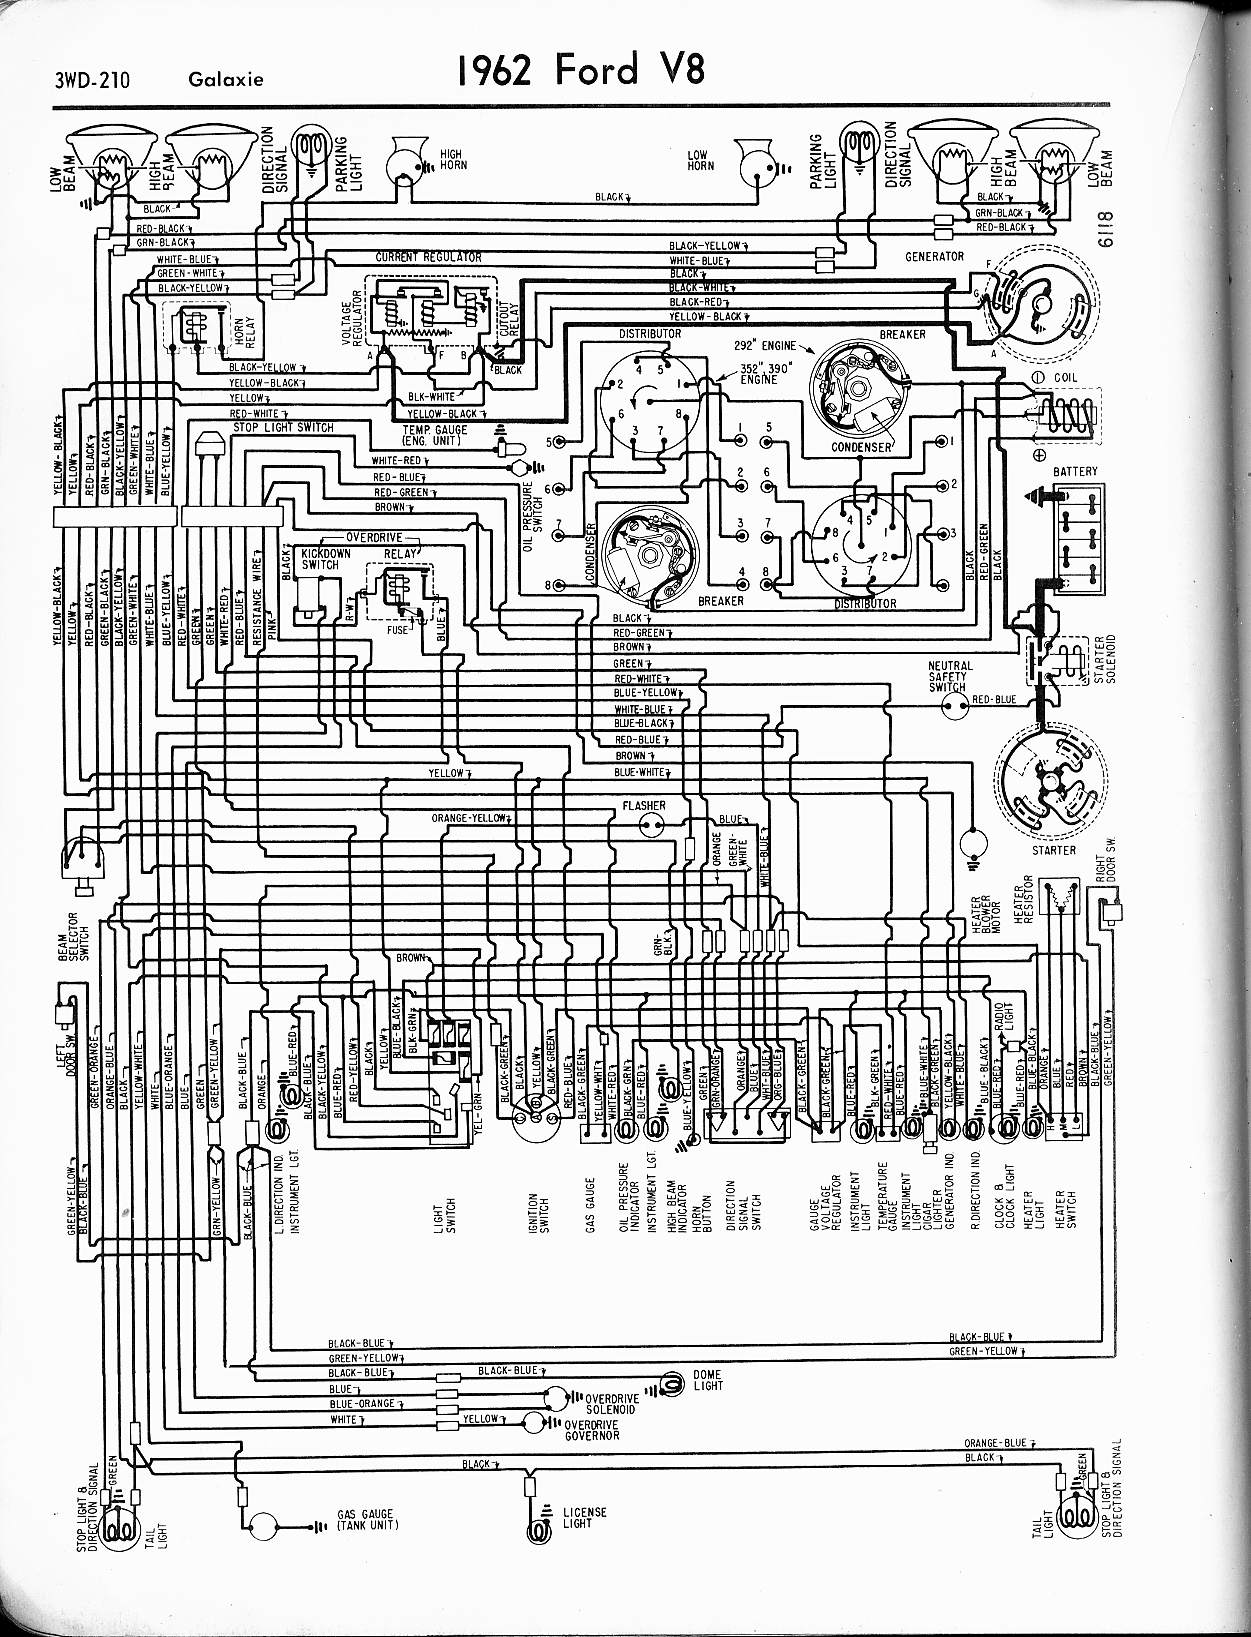 hight resolution of 1997 ford t bird wiring diagram share circuit diagrams 1997 ford thunderbird radio wiring diagram 1997 ford thunderbird wiring diagram